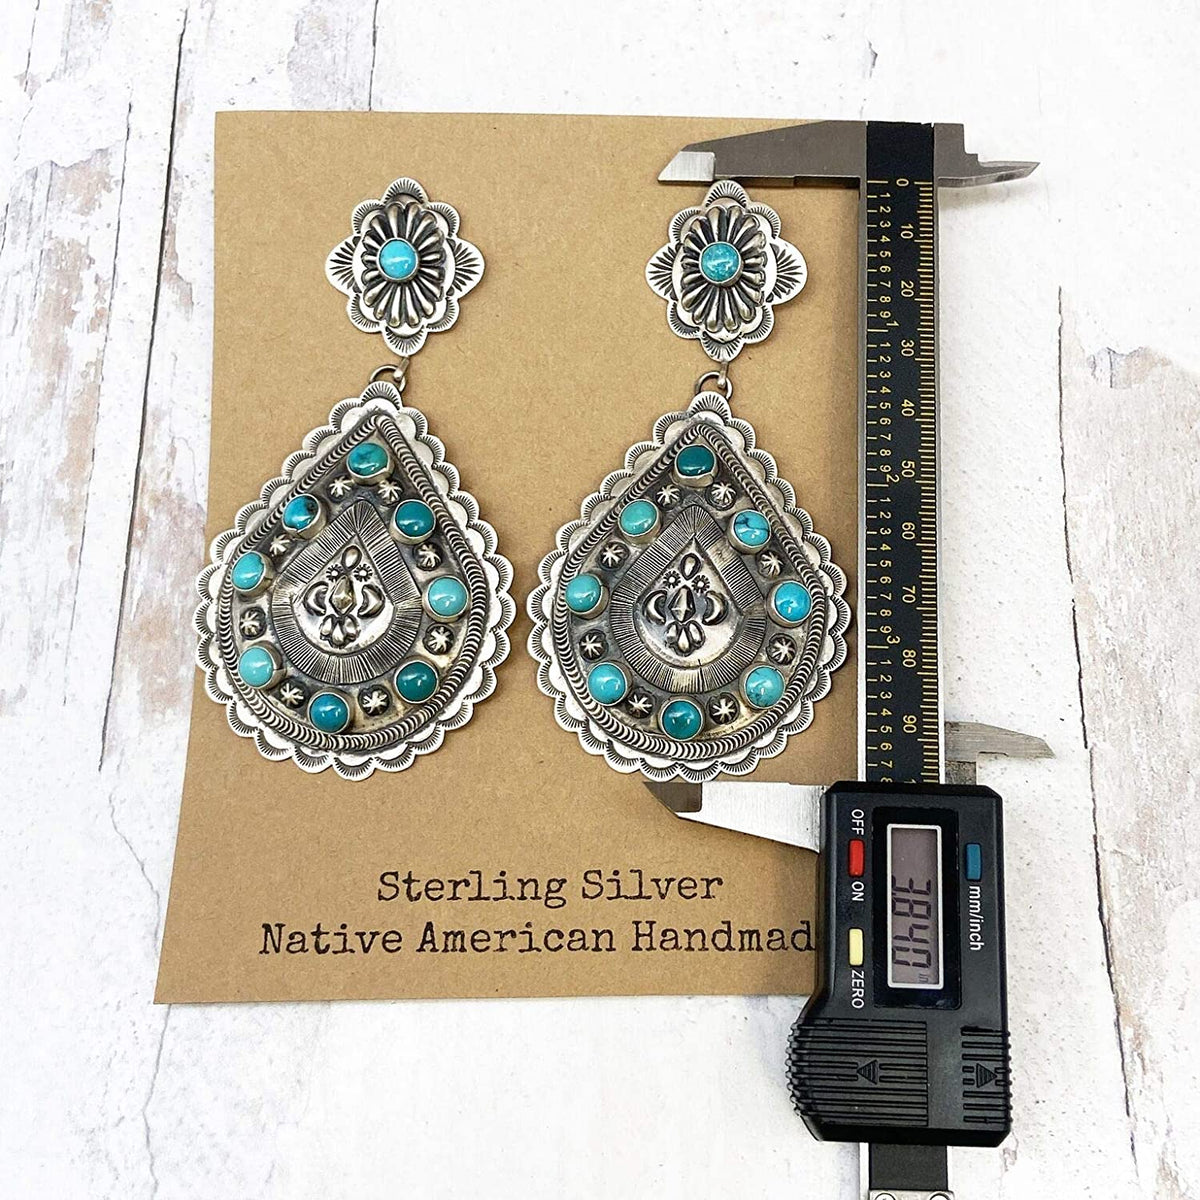 Genuine Sleeping Beauty Turquoise Statement Earrings, Oxidized Sterling Silver, Authentic Navajo Native American USA Handmade, Artist Signed, Nickle Free, Southwest Vintage Style